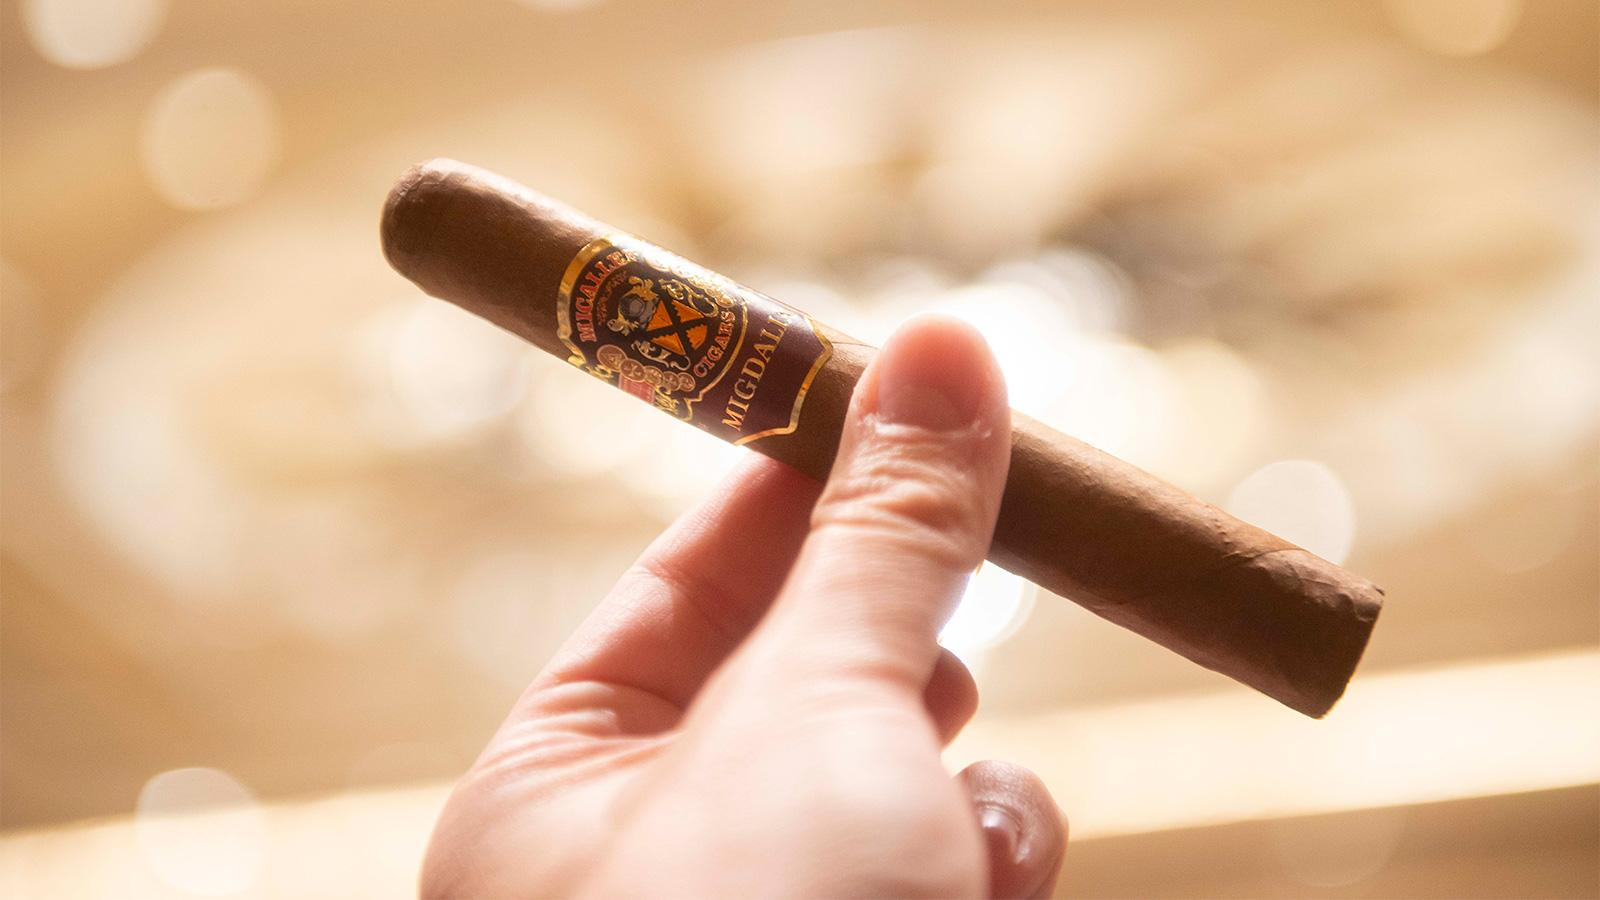 The Micallef Migdalia Toro is a 6 inch by 52 ring gauge size that is not yet on the market.